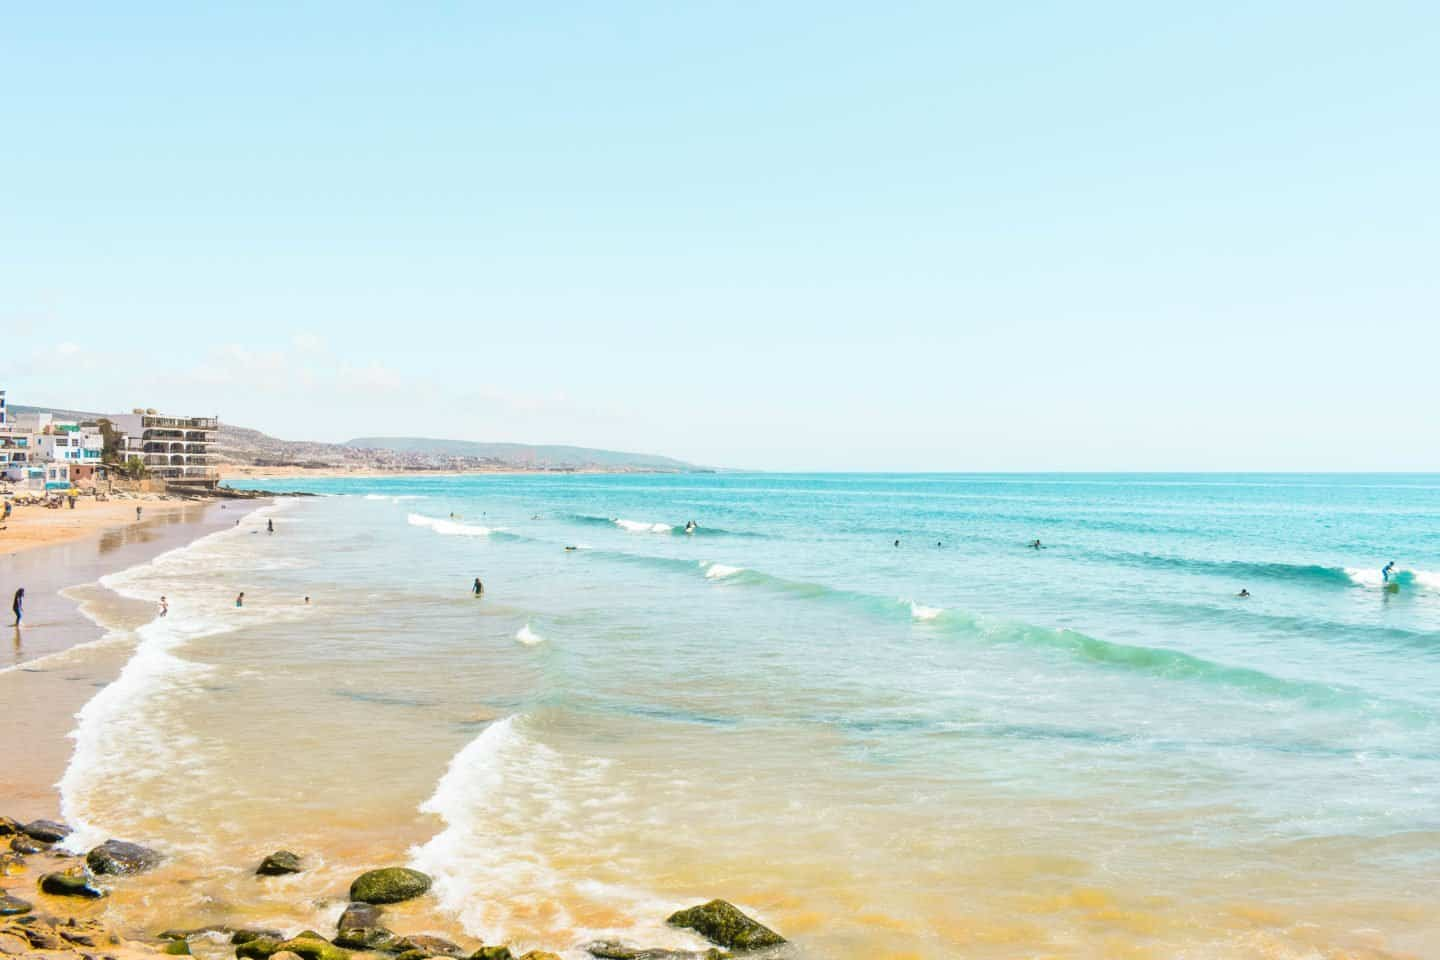 Surfing at Taghazout's main beach